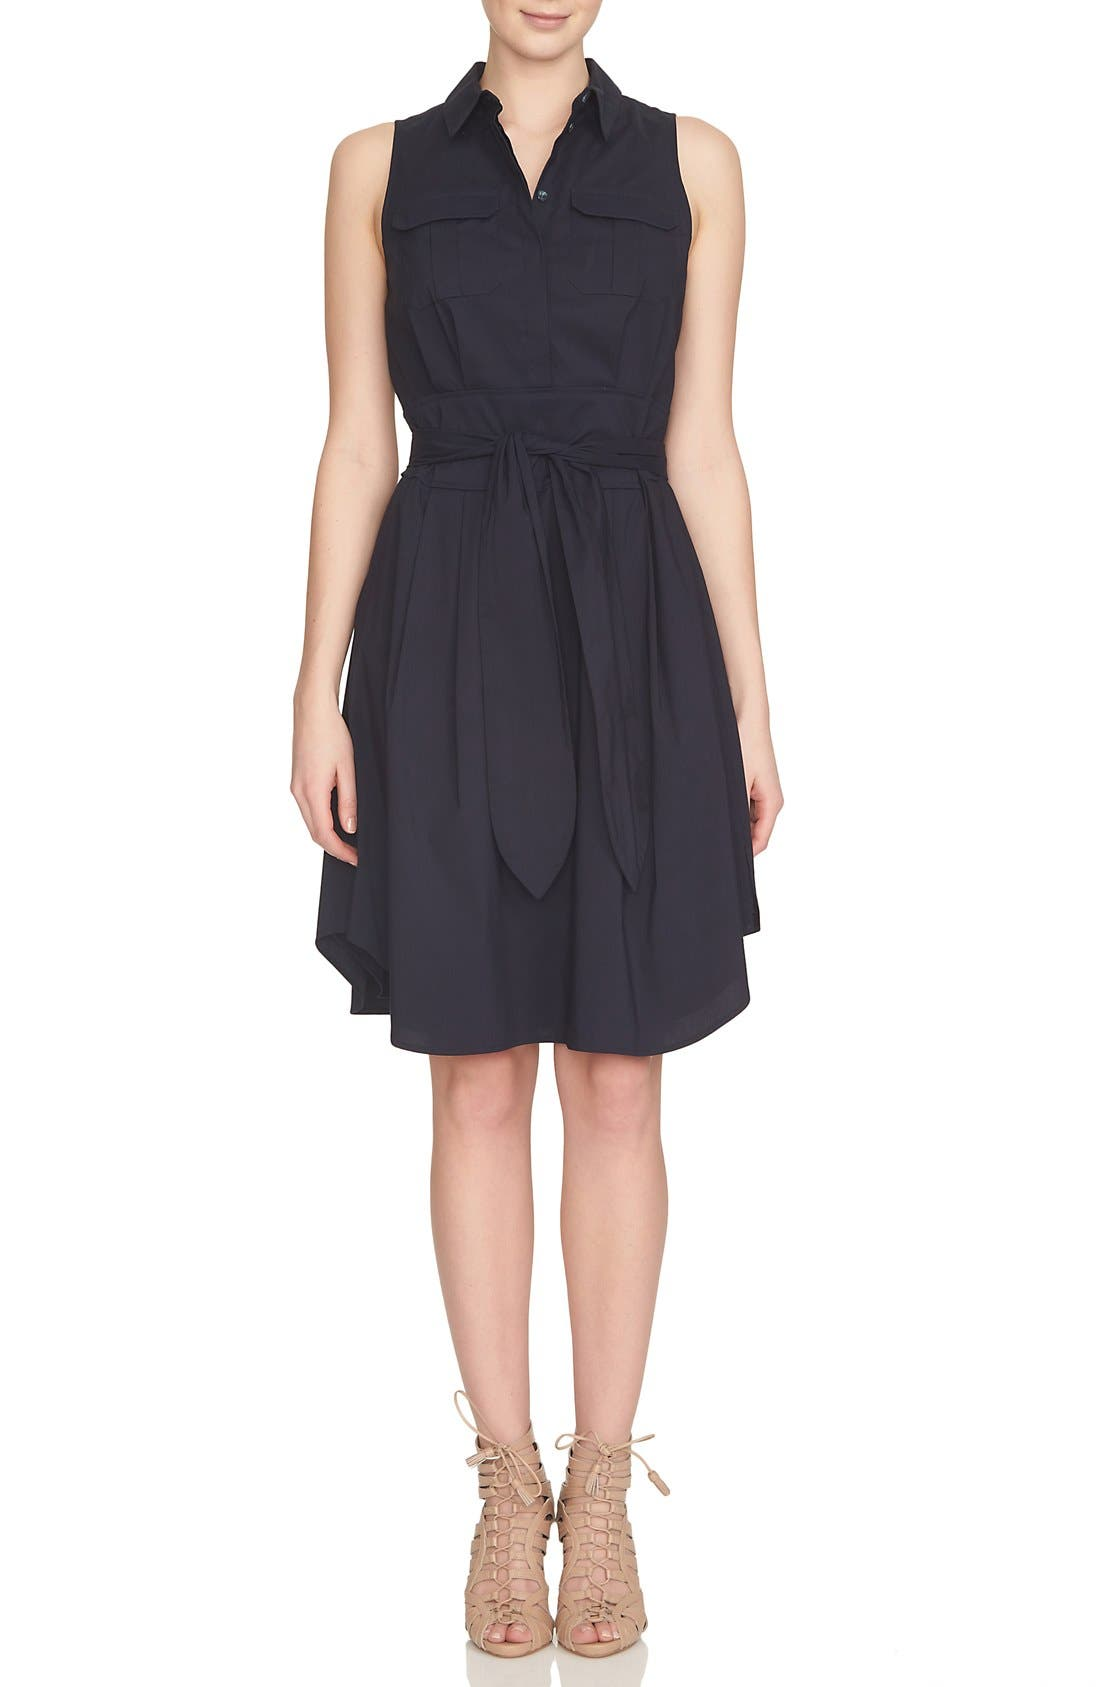 Cynthia Steffe Collared Cotton Blend Fit & Flare Dress